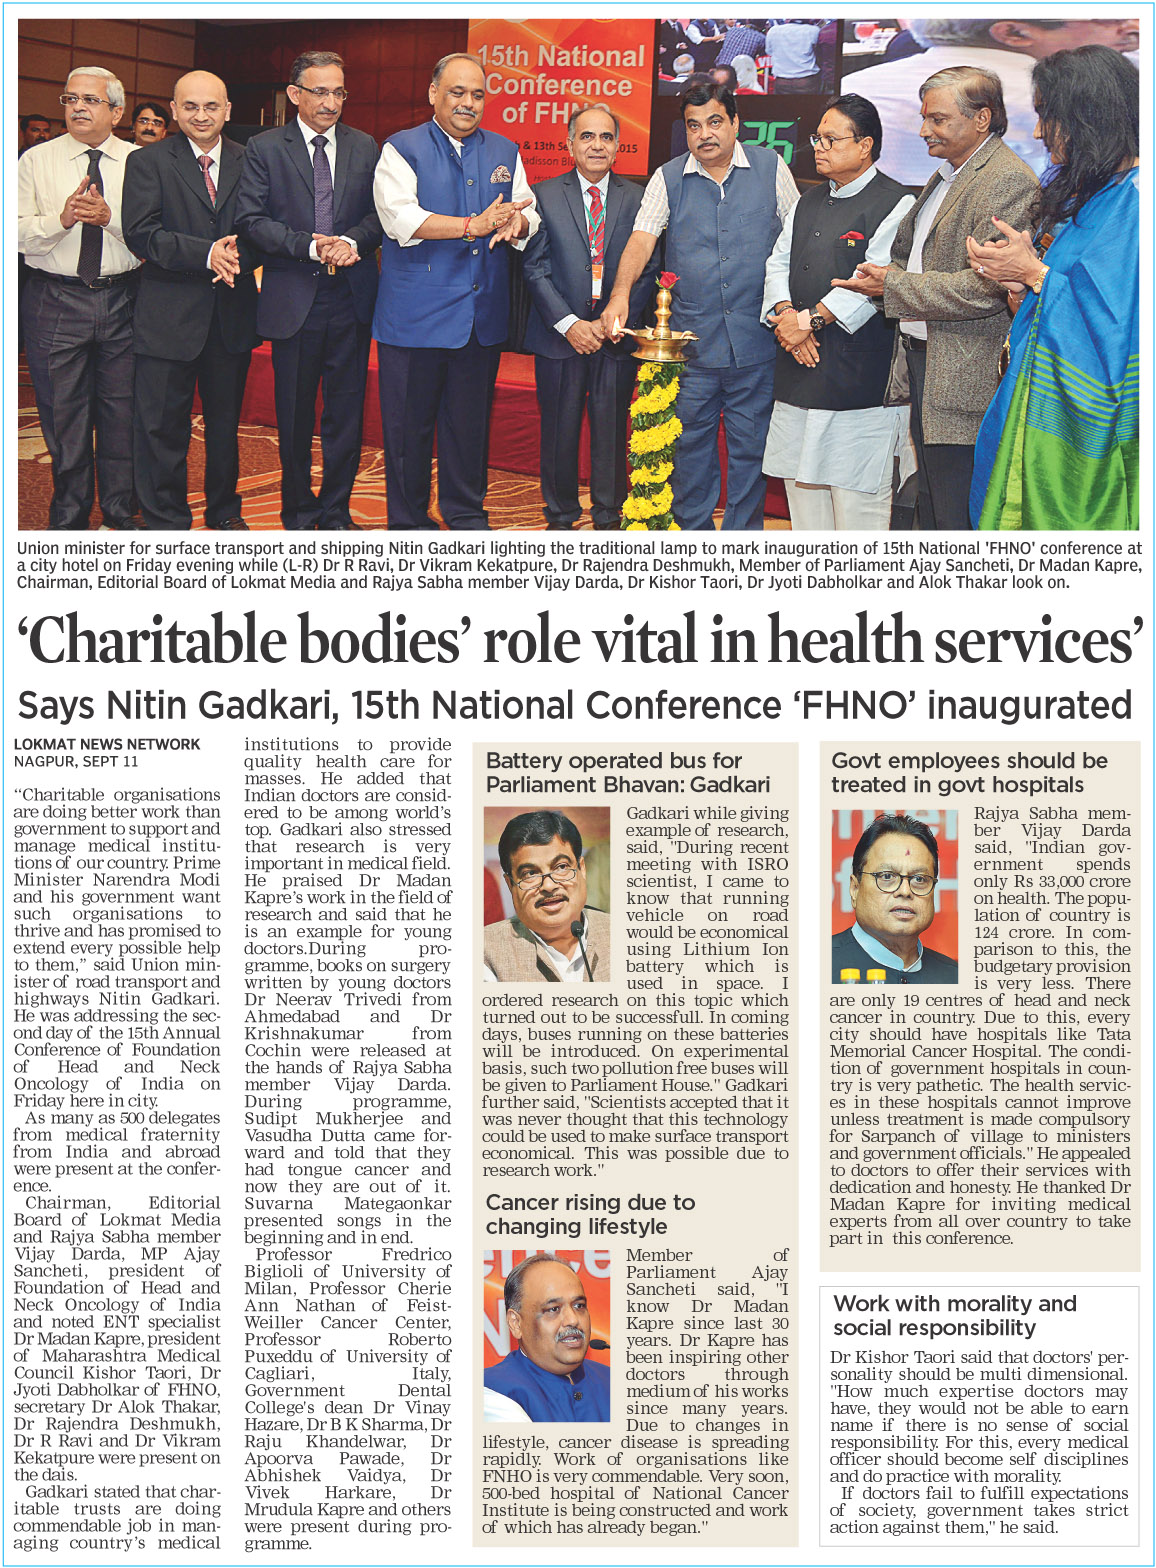 'Charitable bodies' role vital in health services'